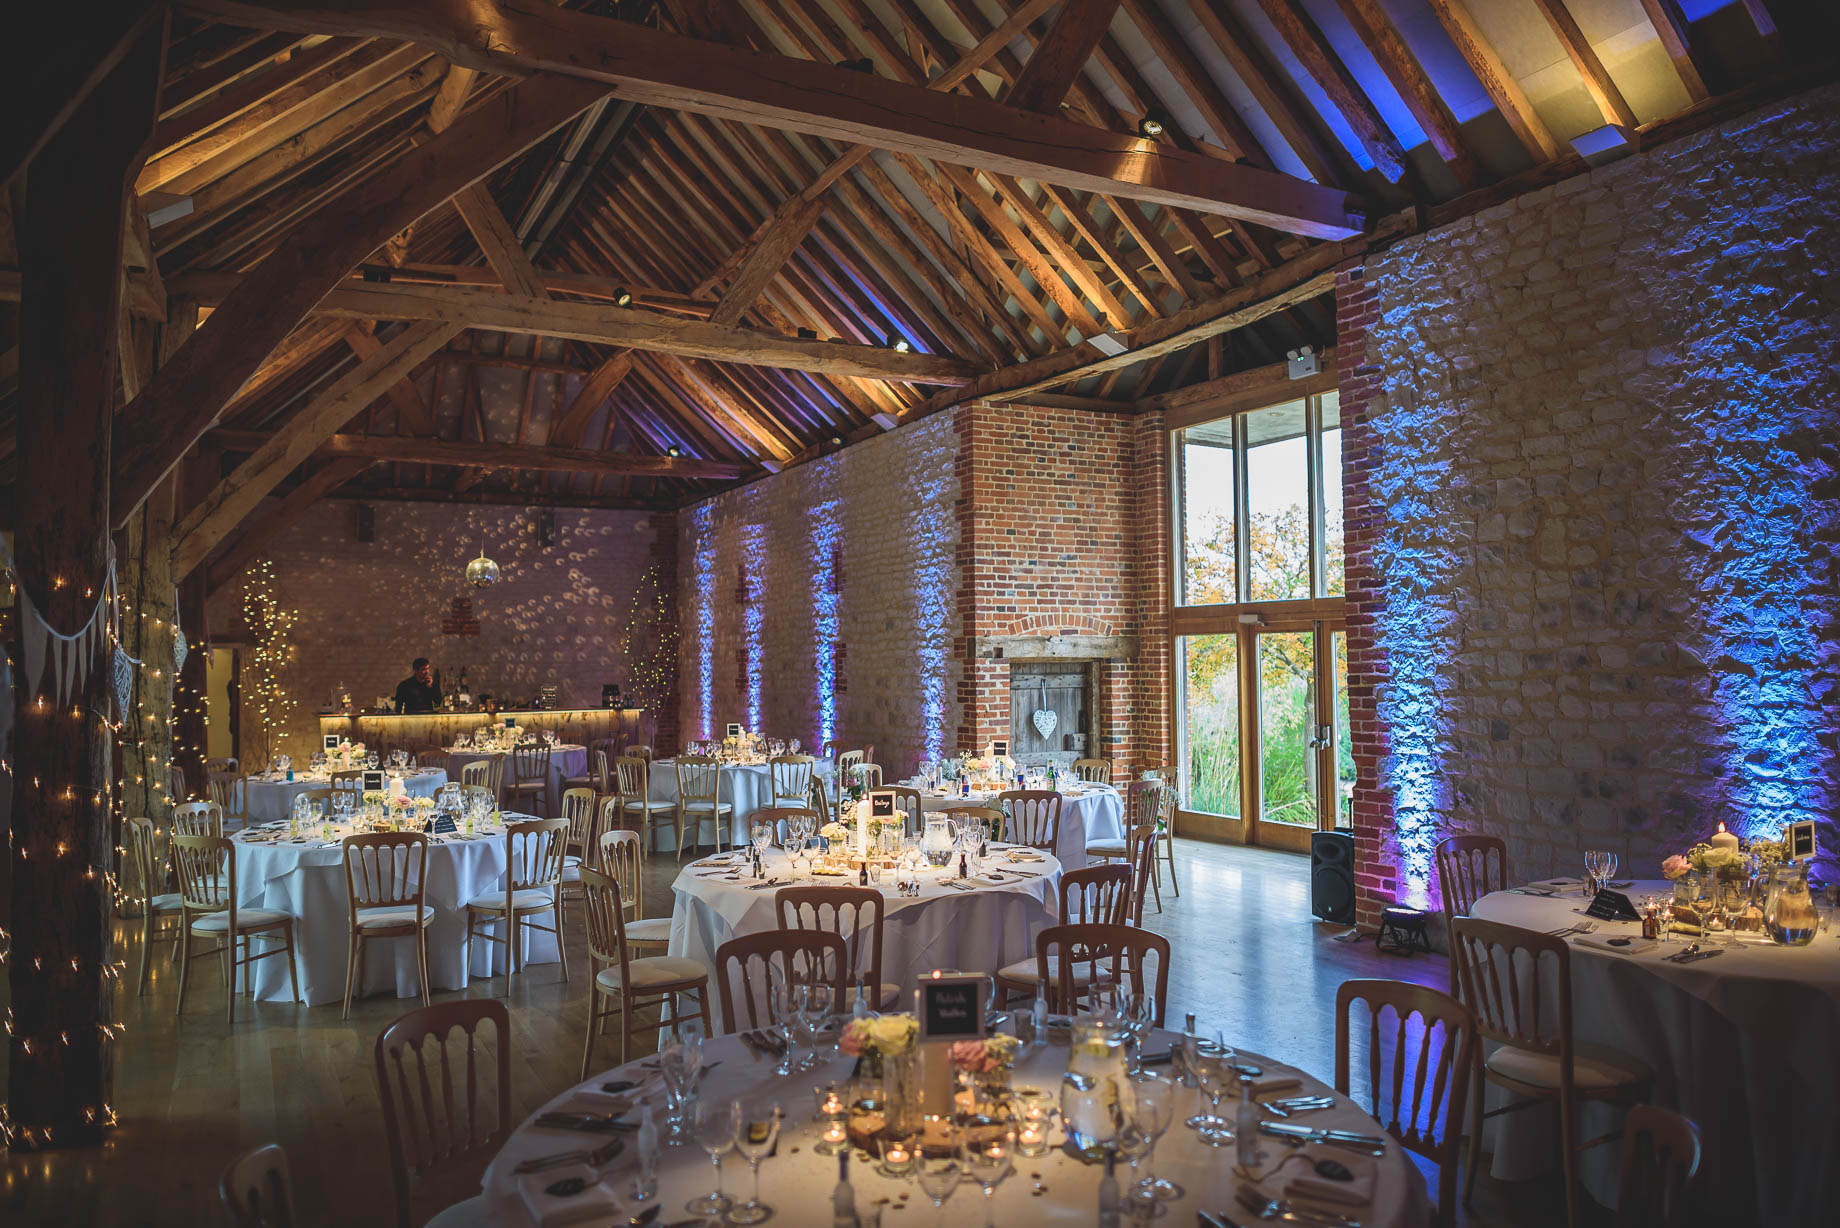 Bury Court Barn wedding photography - Guy Collier Photography - Karen and John (112 of 166)